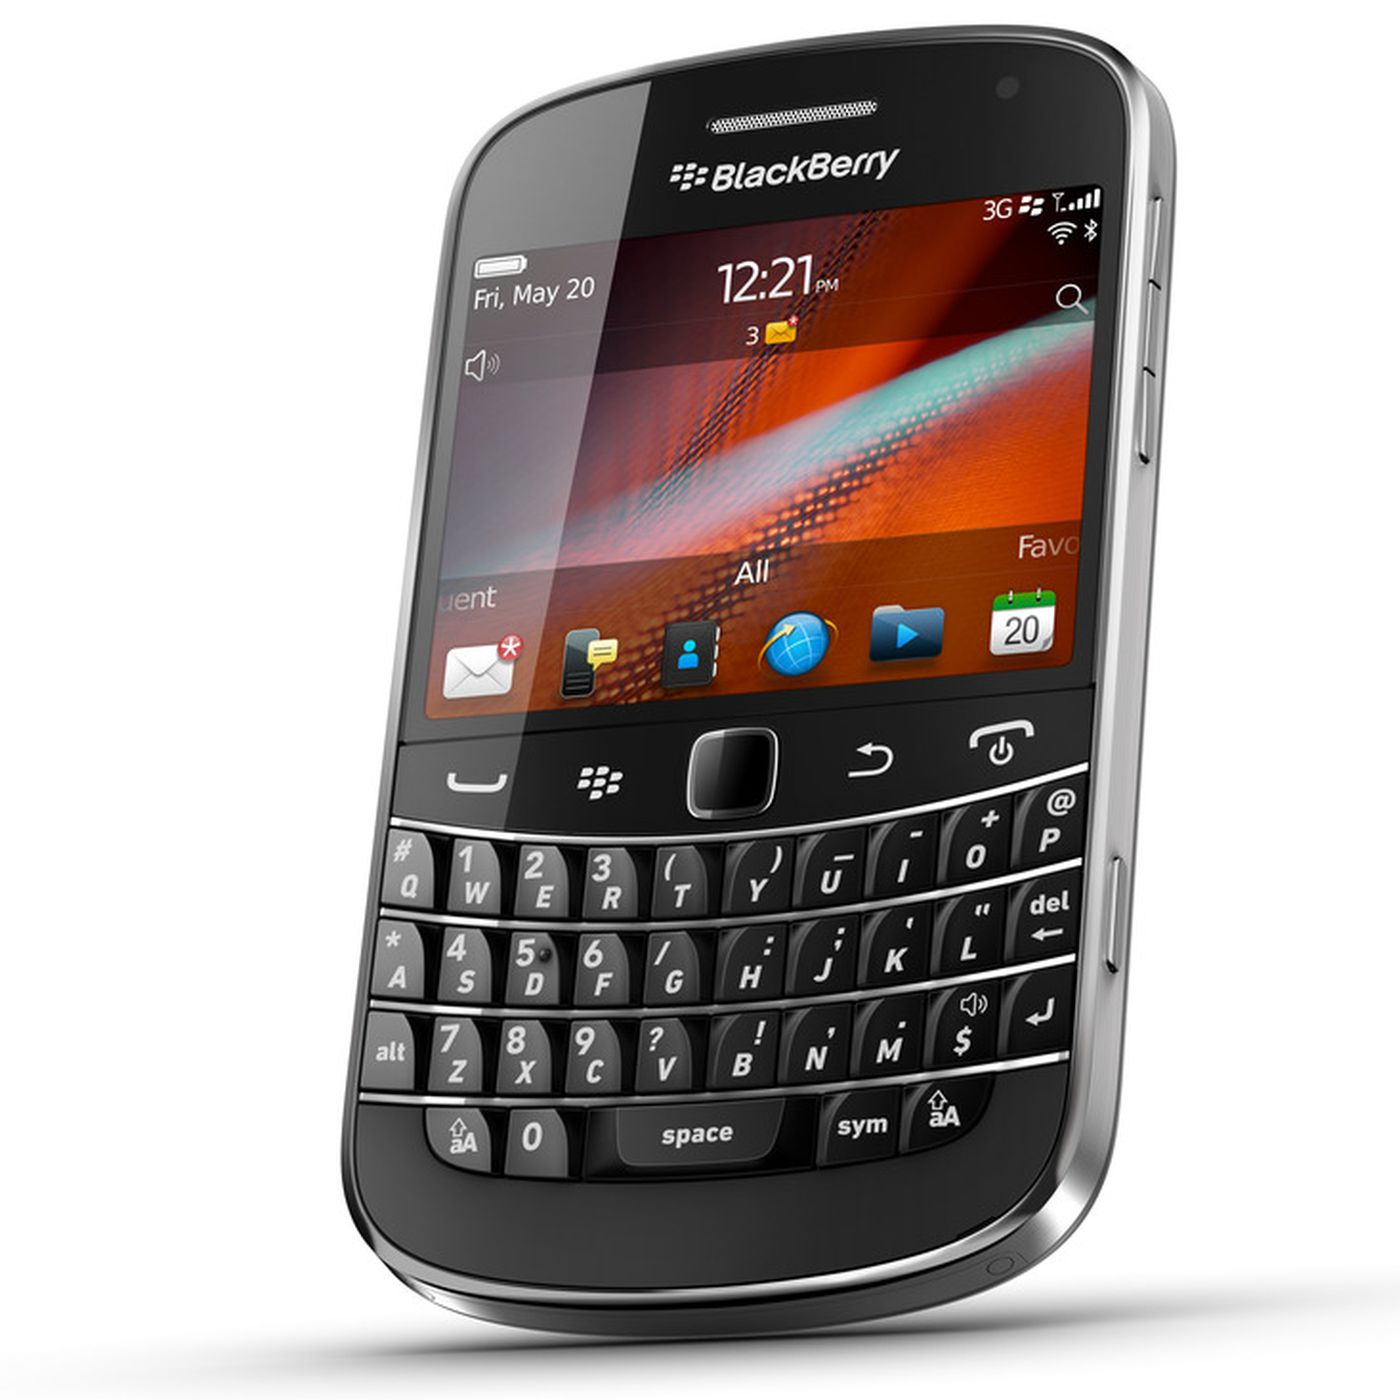 BlackBerry's success led to its failure - The Verge